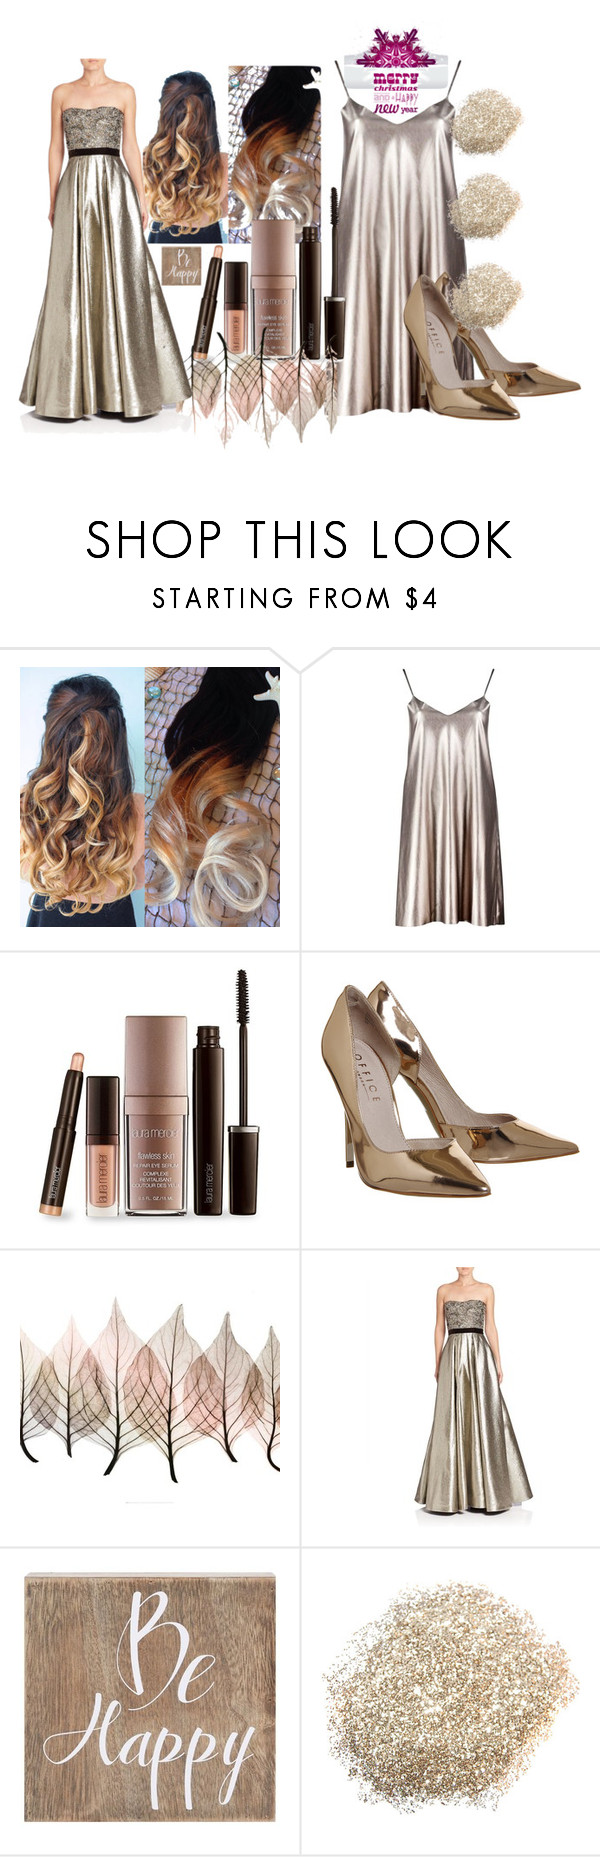 """Bez naslova #131"" by rikyy on Polyvore featuring Boohoo, Laura Mercier, Artistica, Pamella, Pamella Roland i Belle Maison"